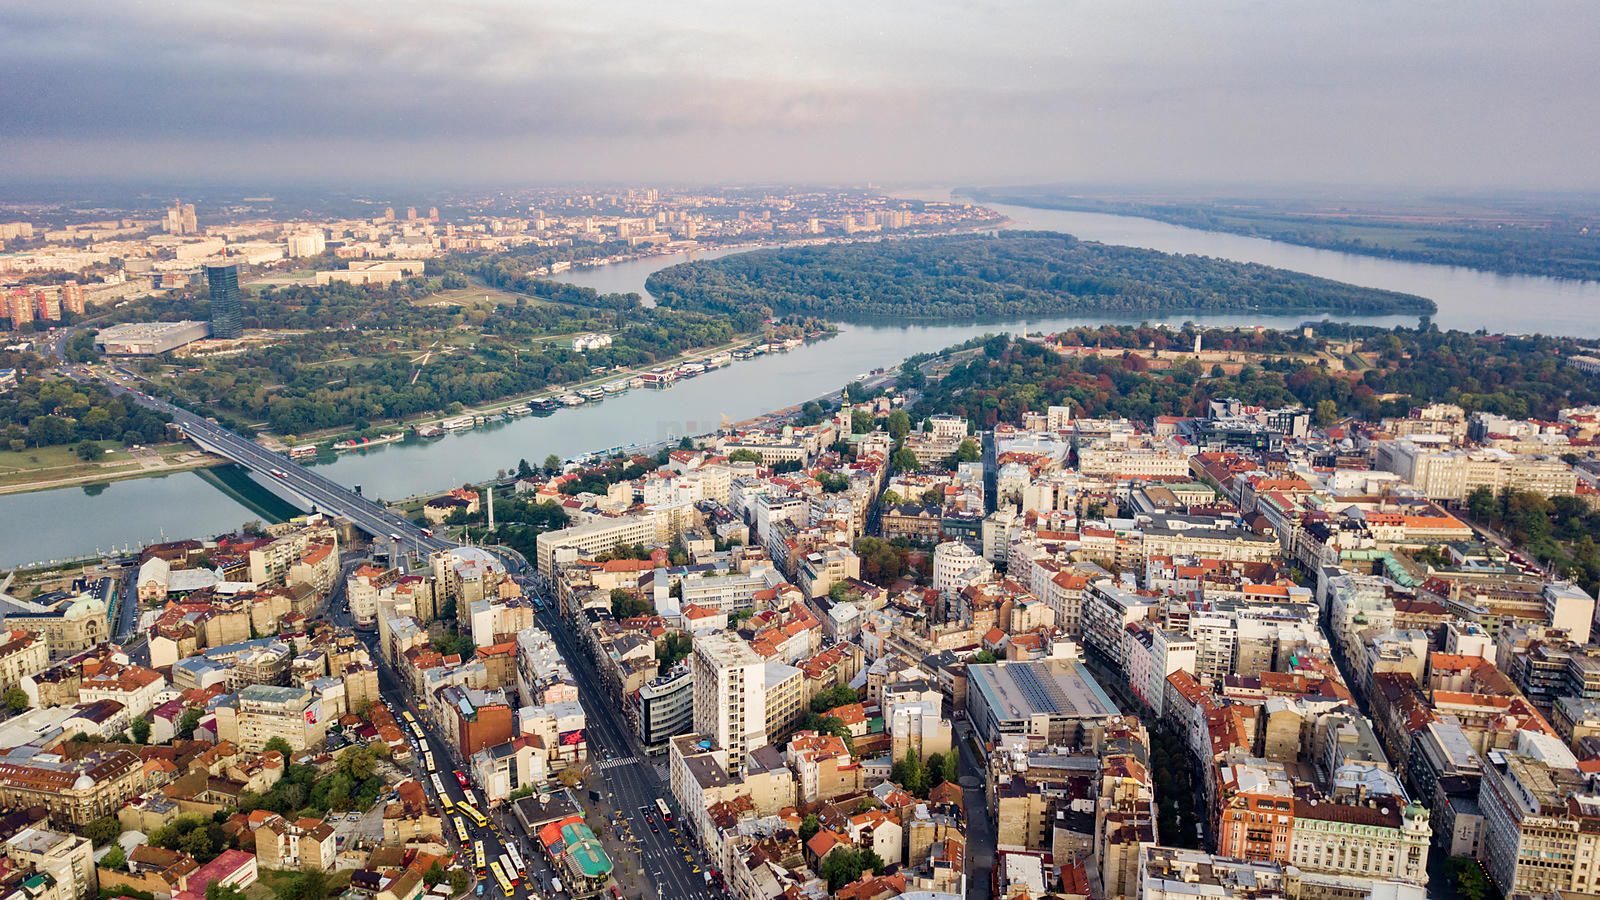 Aerial View over the City of Belgrade Looking NW towards Great War Island